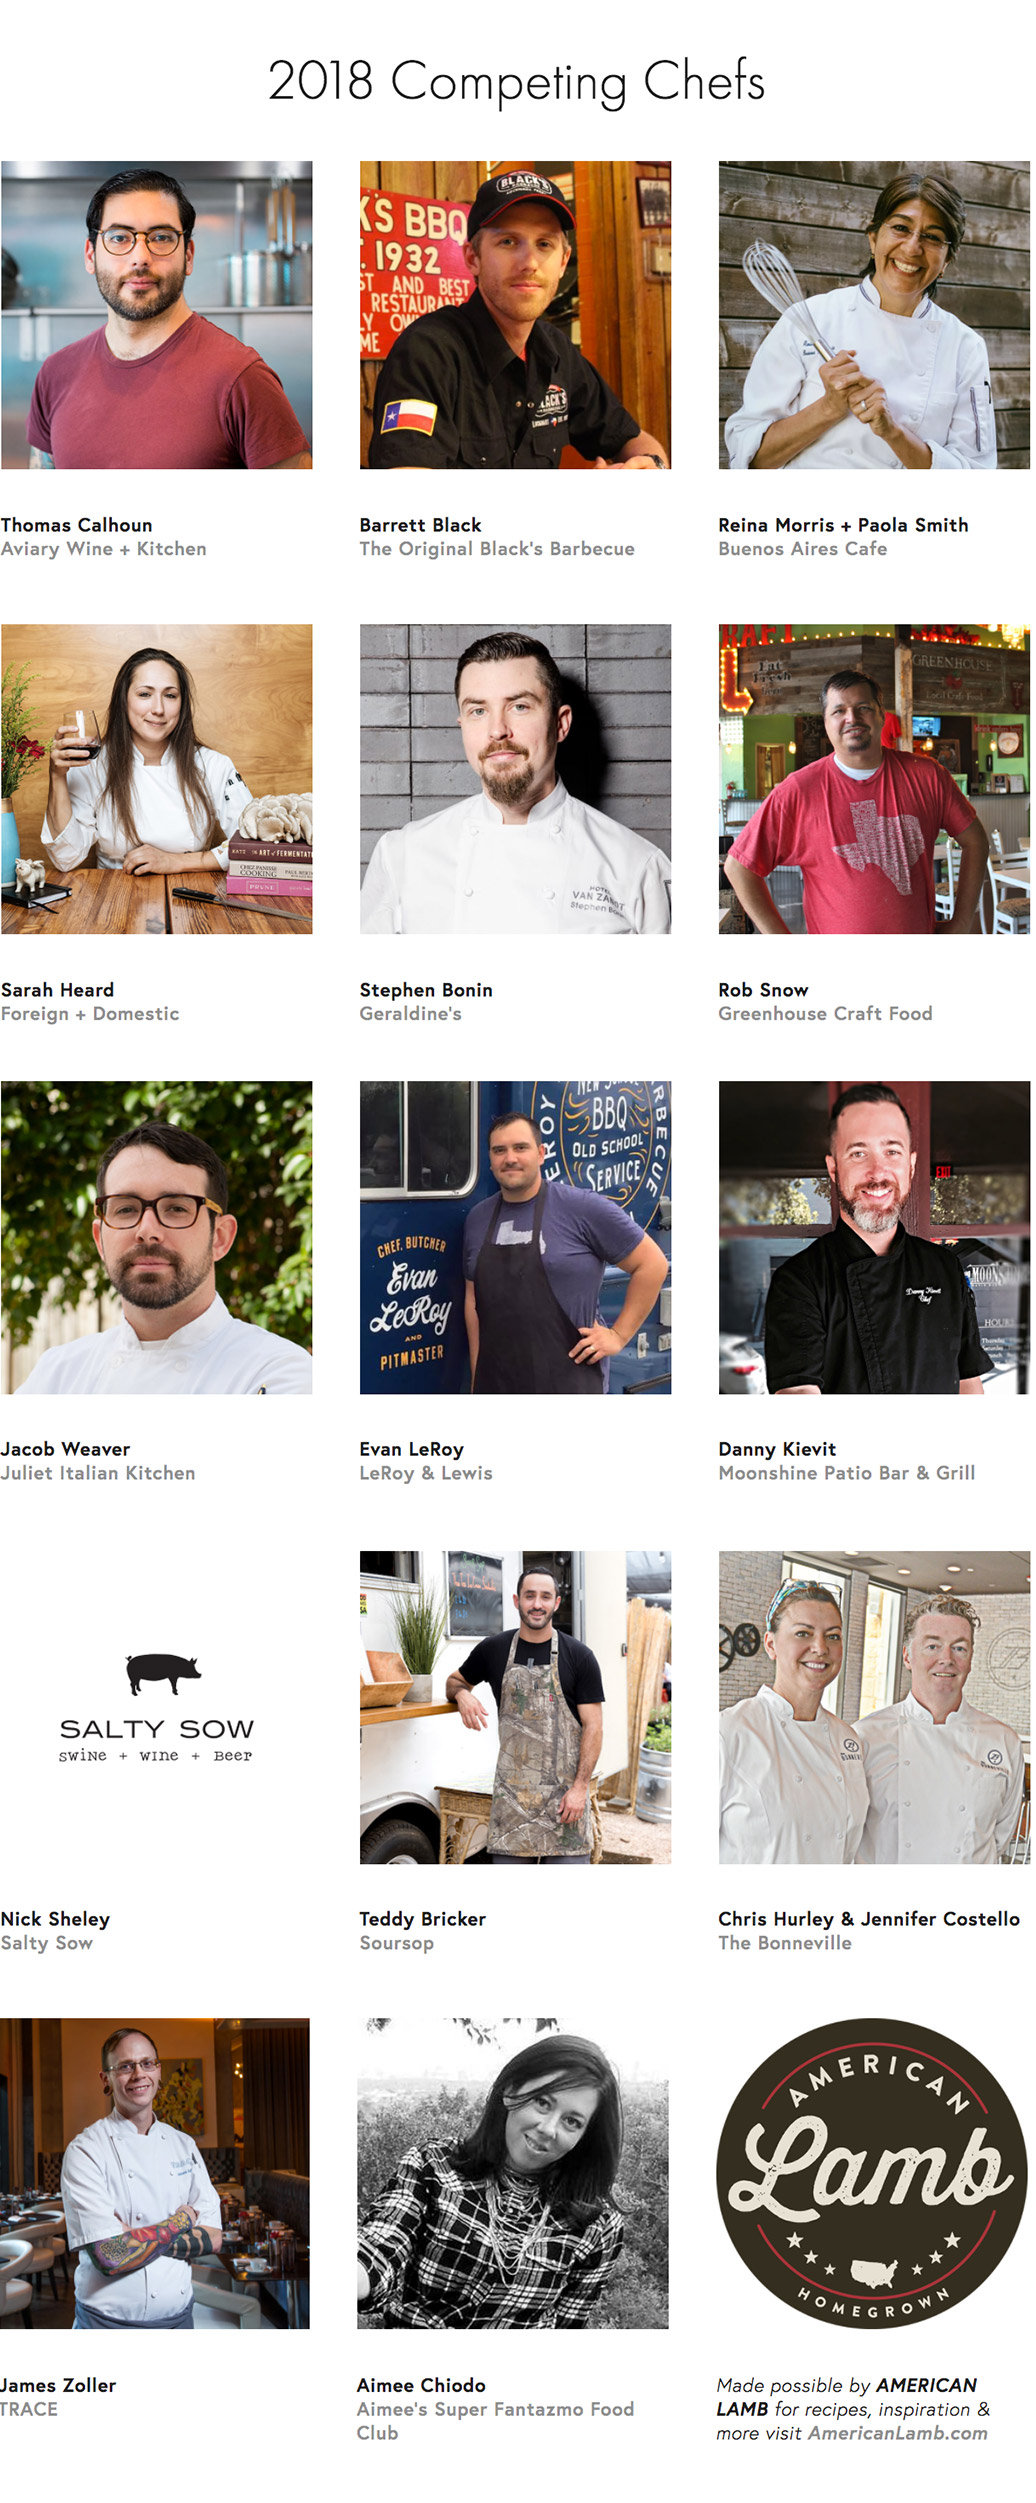 Austin Competing Chefs